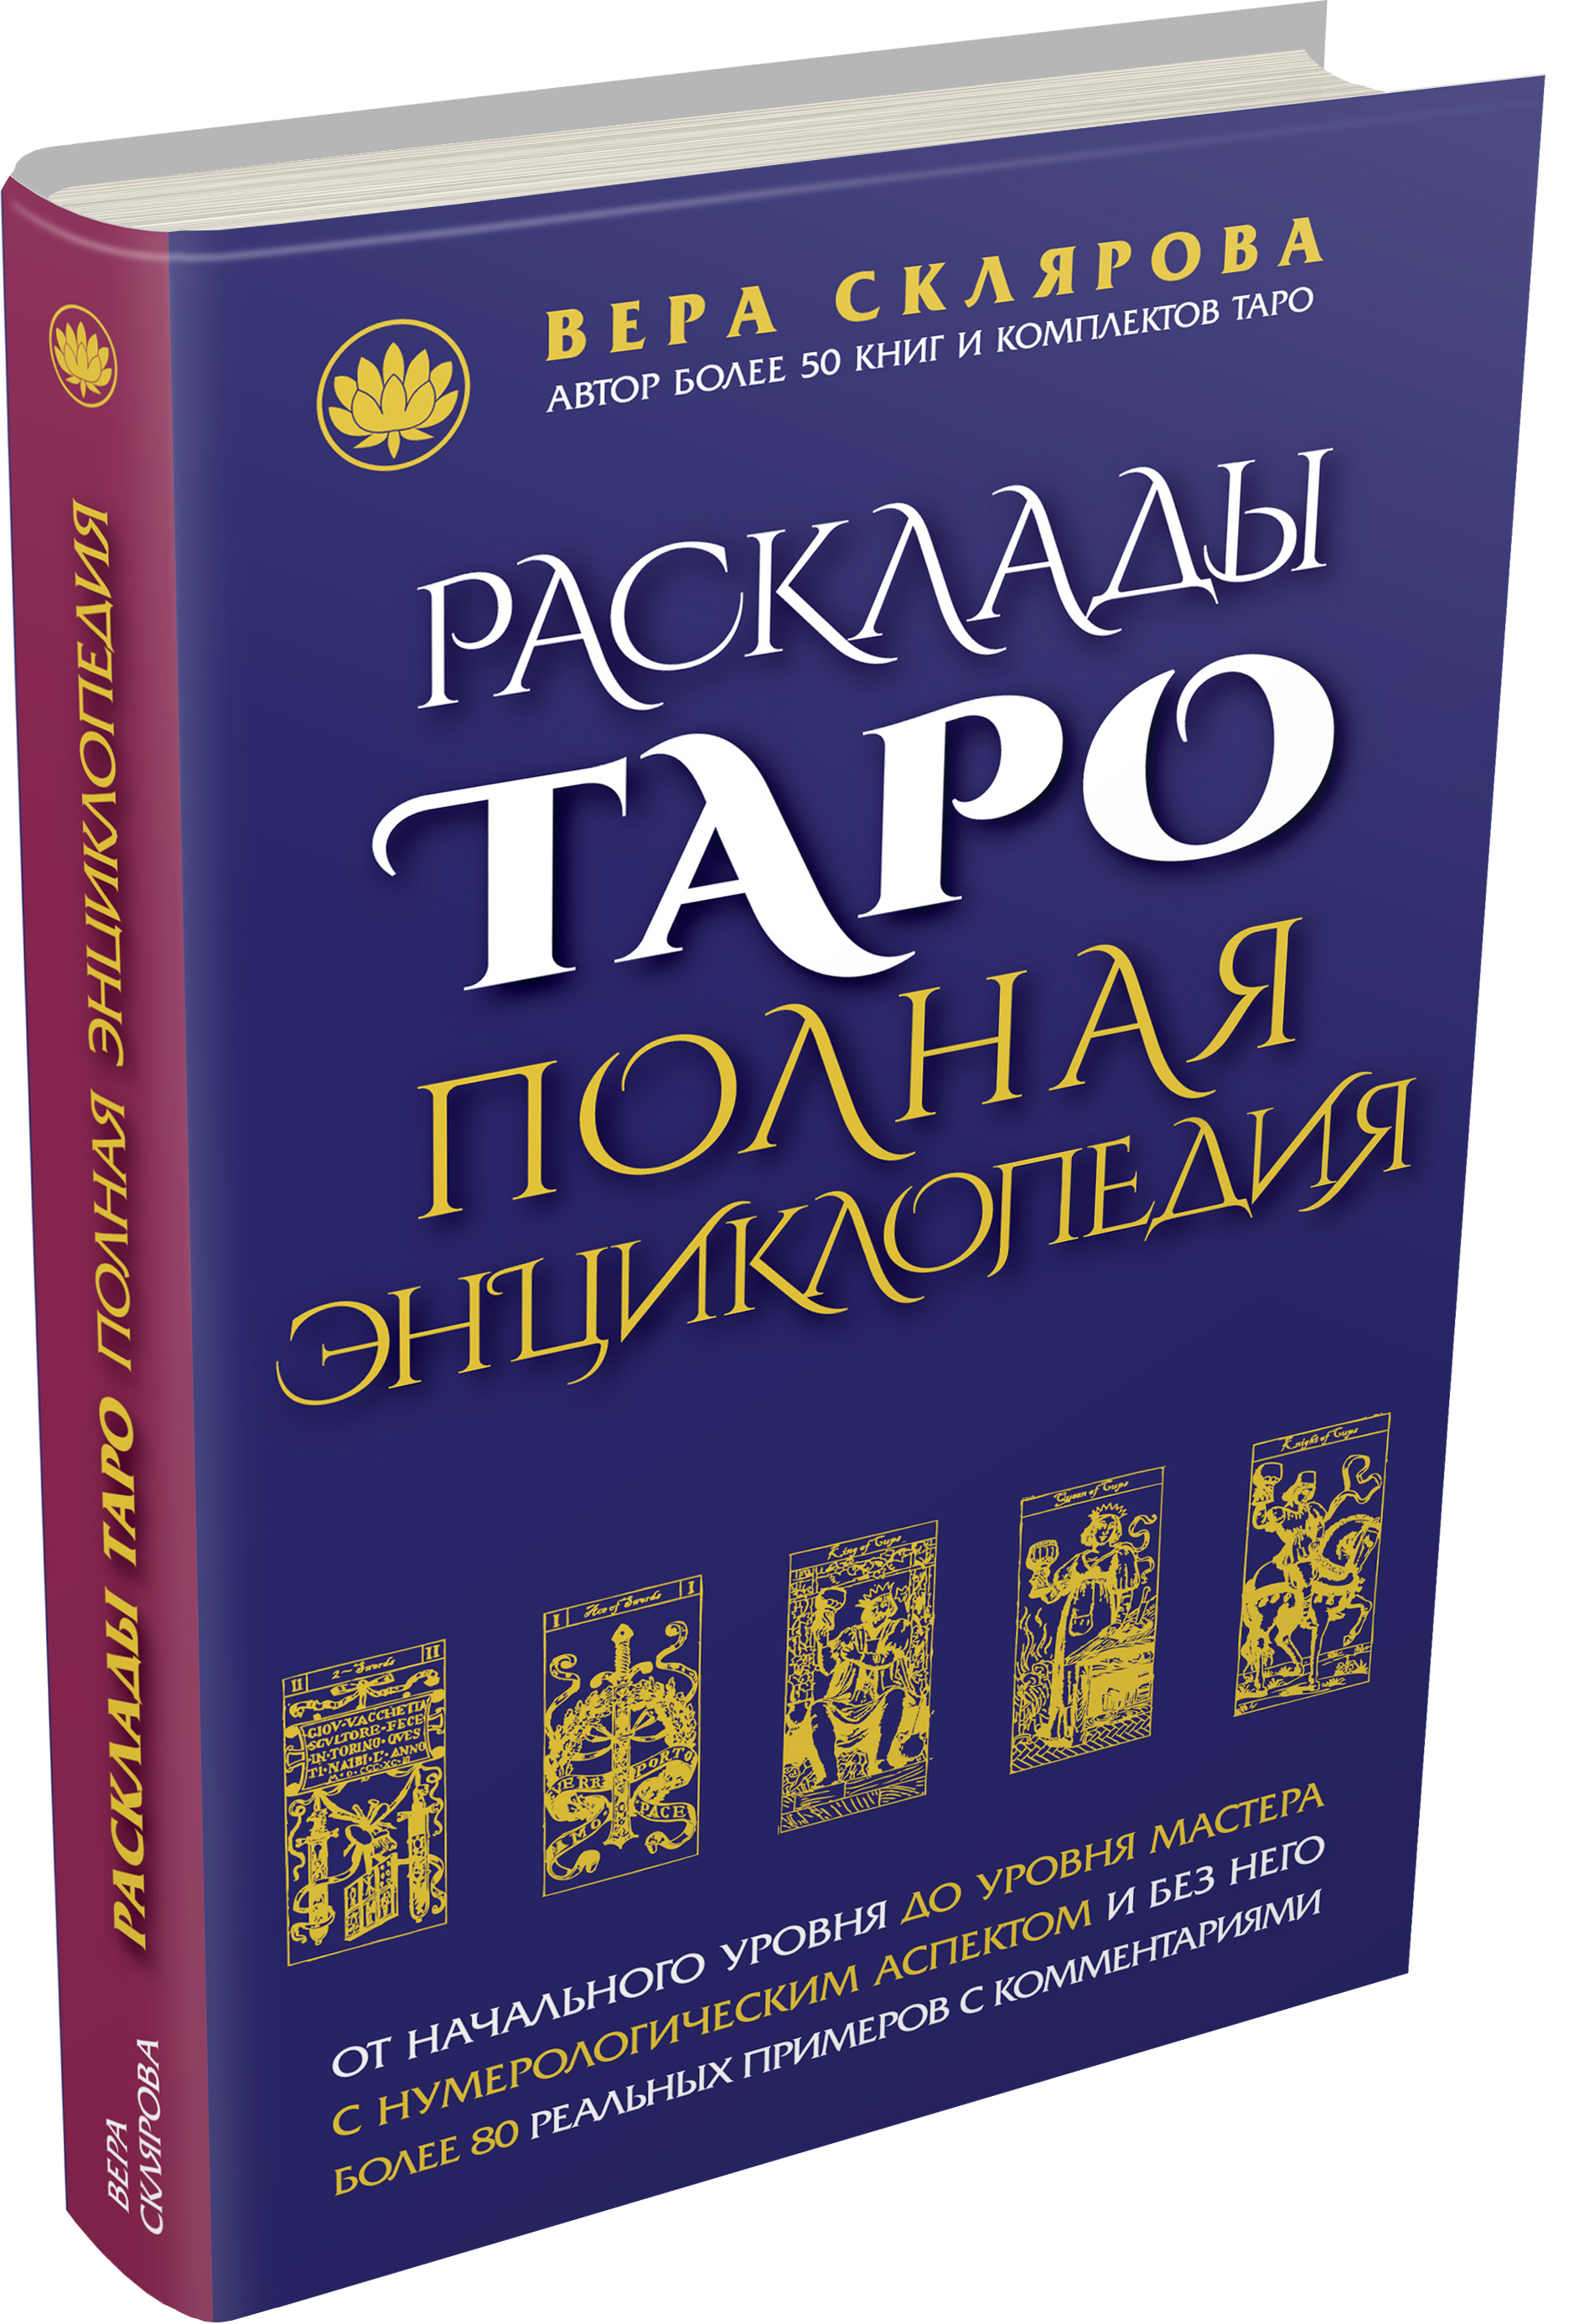 Вера Склярова Расклады ТАРО. Полная энциклопедия (синяя) hot sale 2015 chain guards for 2000 2005 zx12 zx12r